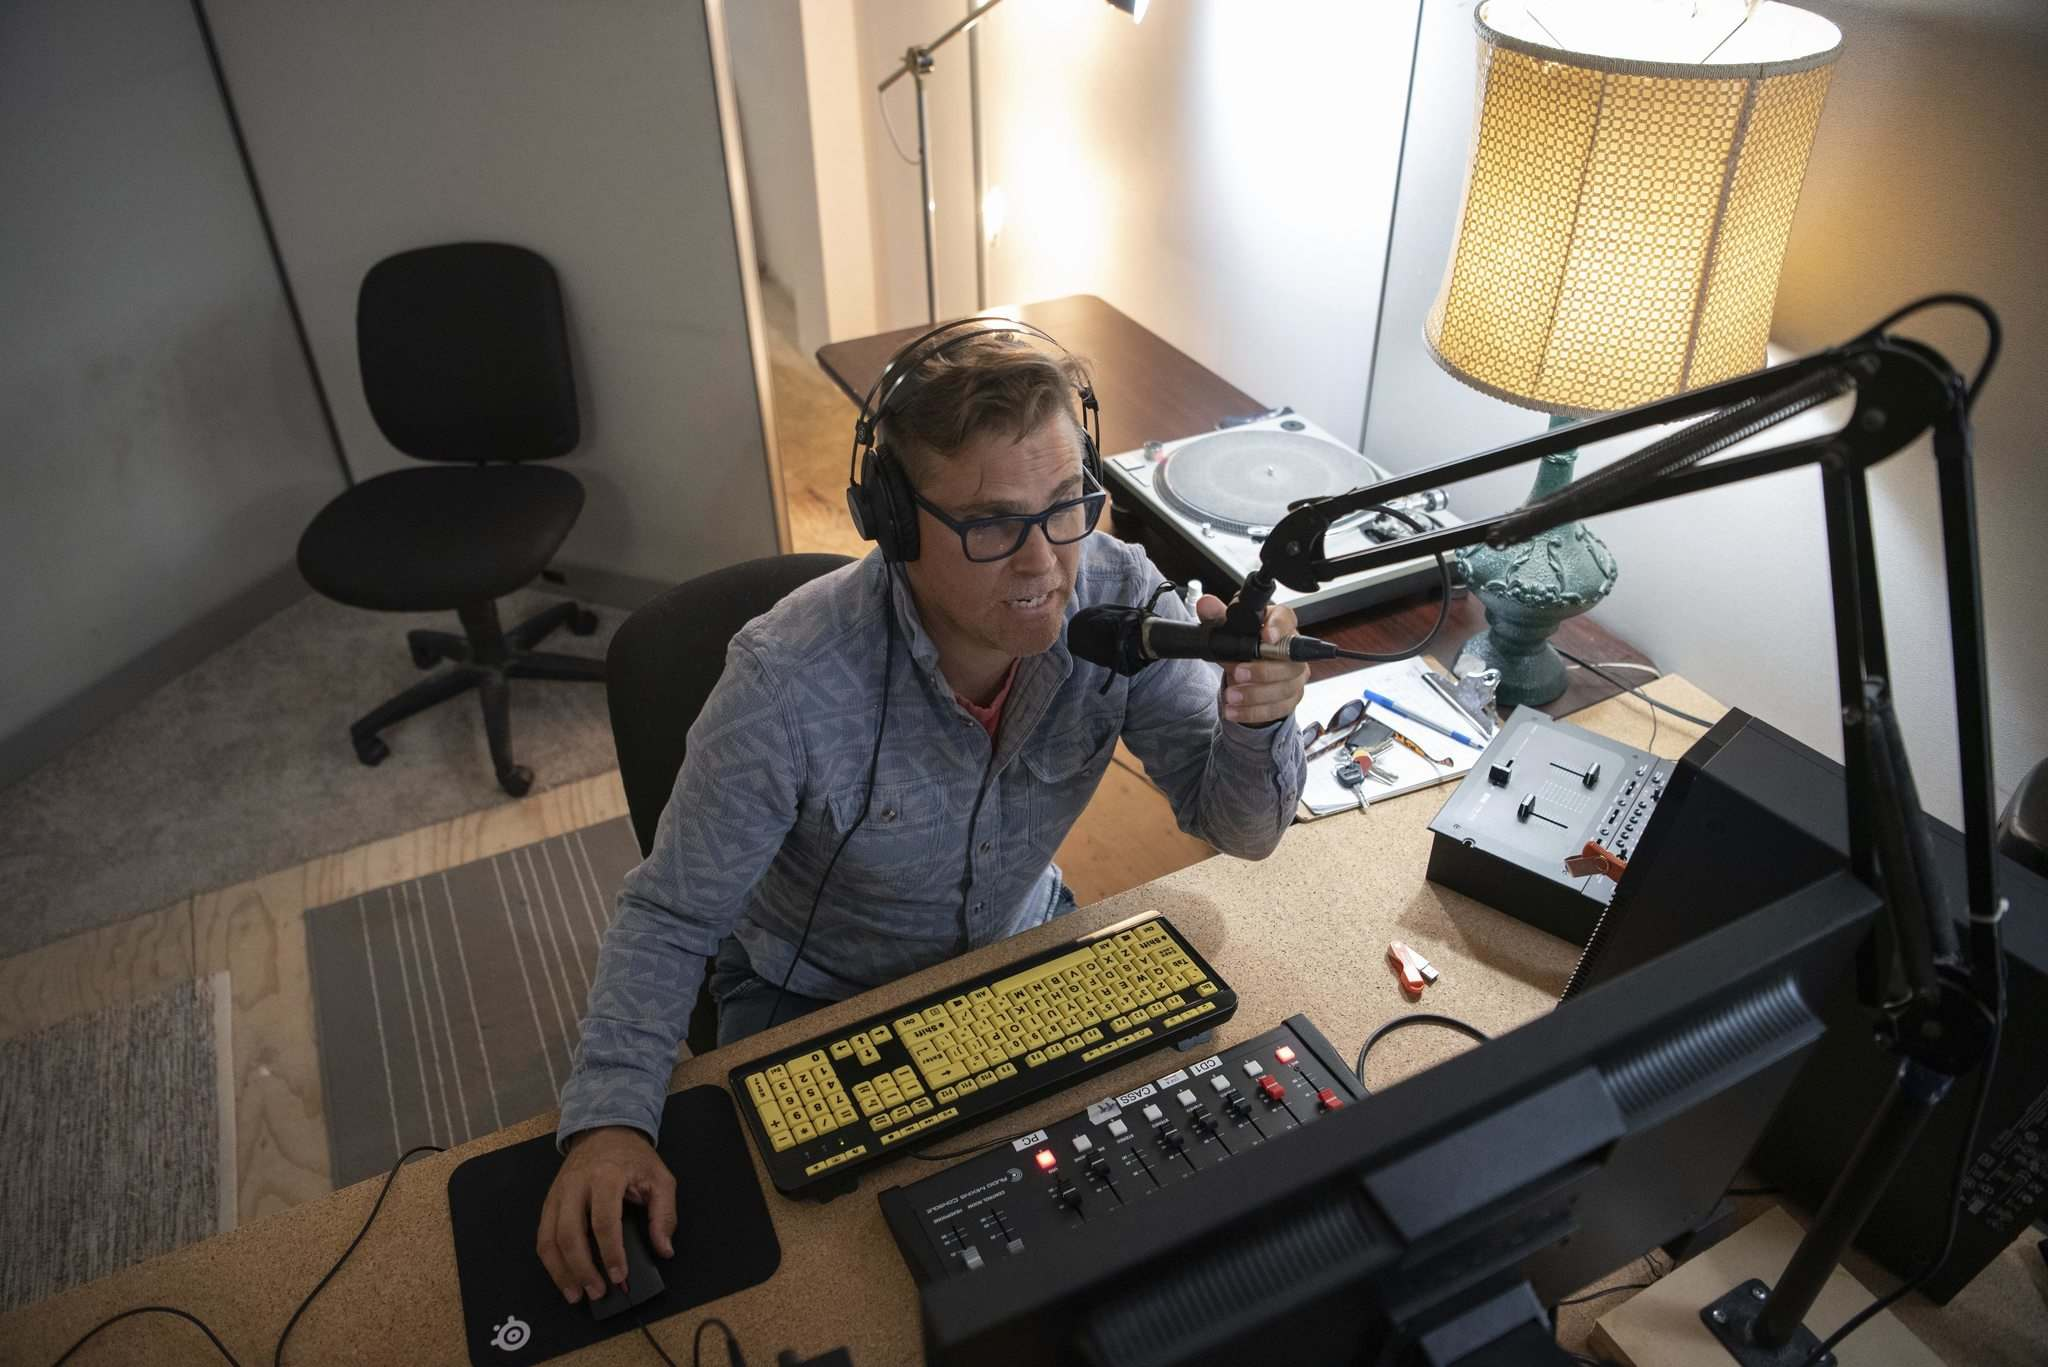 ALEX LUPUL / WINNIPEG FREE PRESS</p><p>Eton Harris, host of the CKUW radio program Lost Chunes, gets back behind a studio microphone. CKUW is broadcasting 13 of its radio programs at a satellite station in the Fortune Block on Main Street, the first time the University of Winnipeg has established an off-site studio in its history.</p>